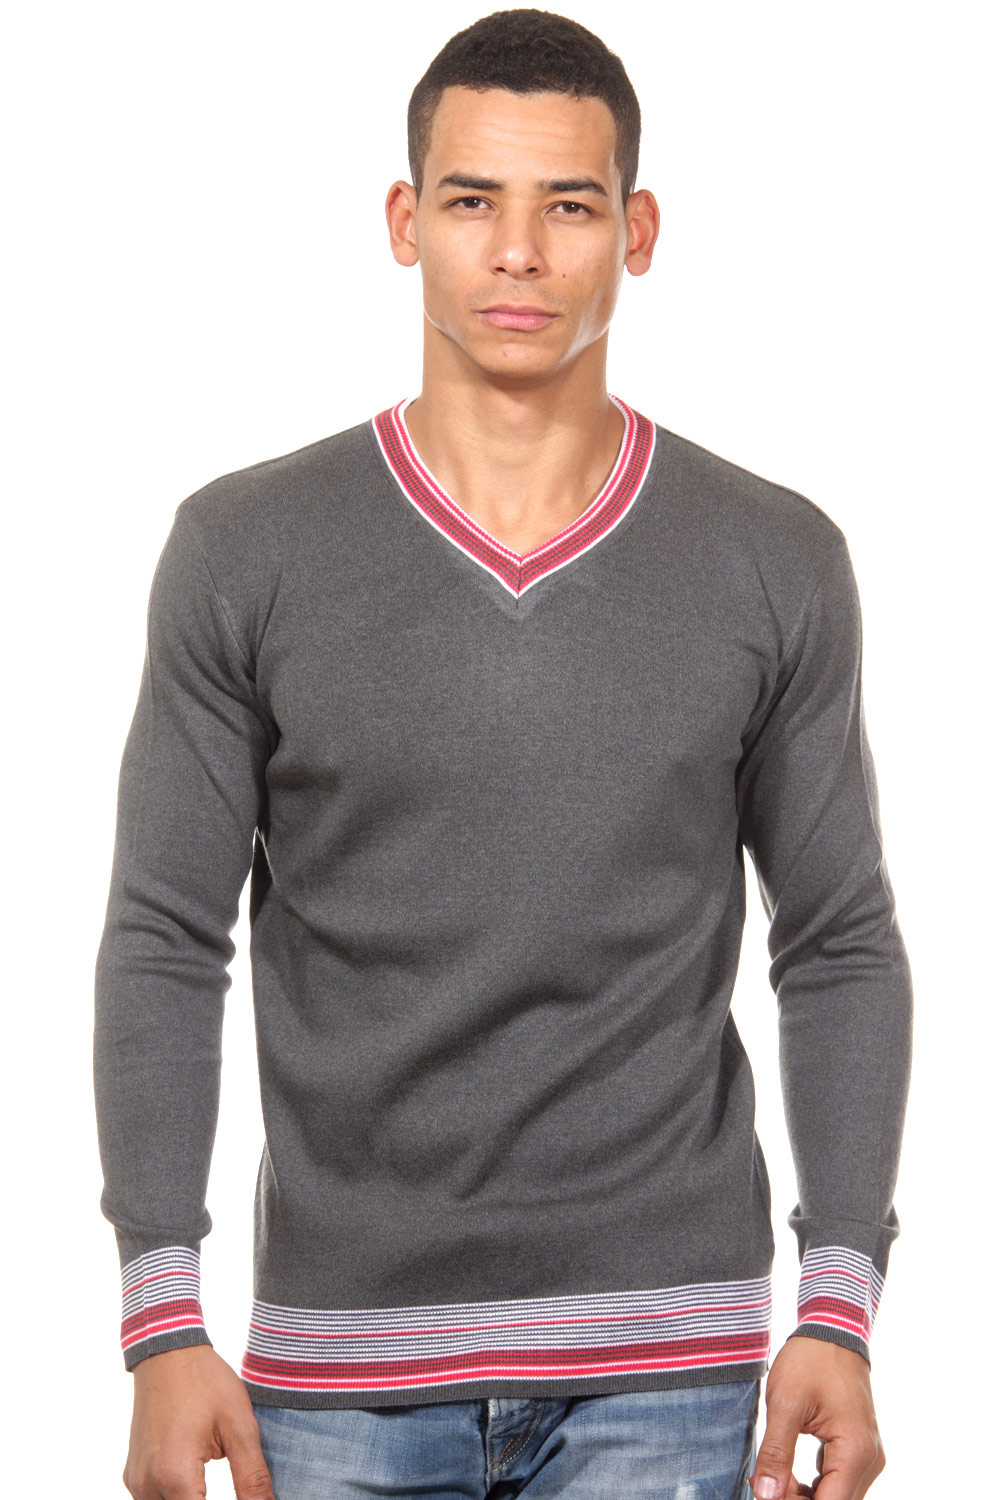 DIFFER jumper v-neck slim fit at oboy.com